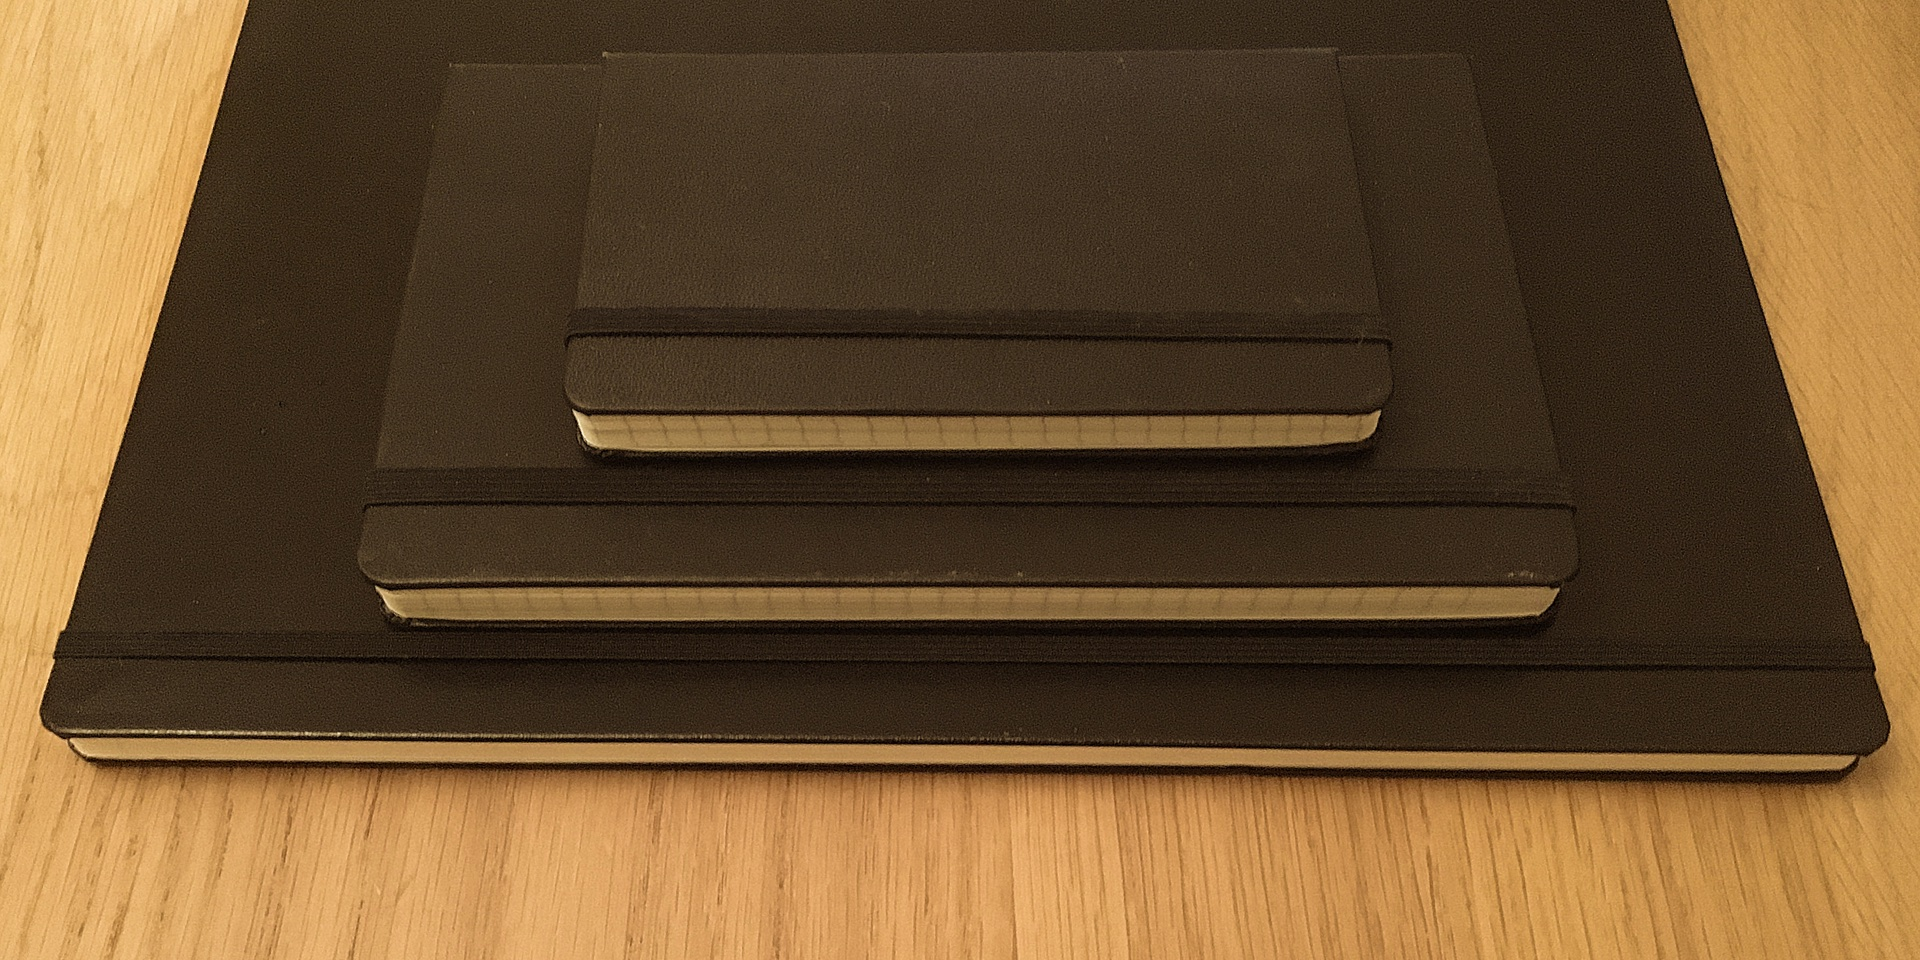 Moleskine and Leuchtturm notebooks